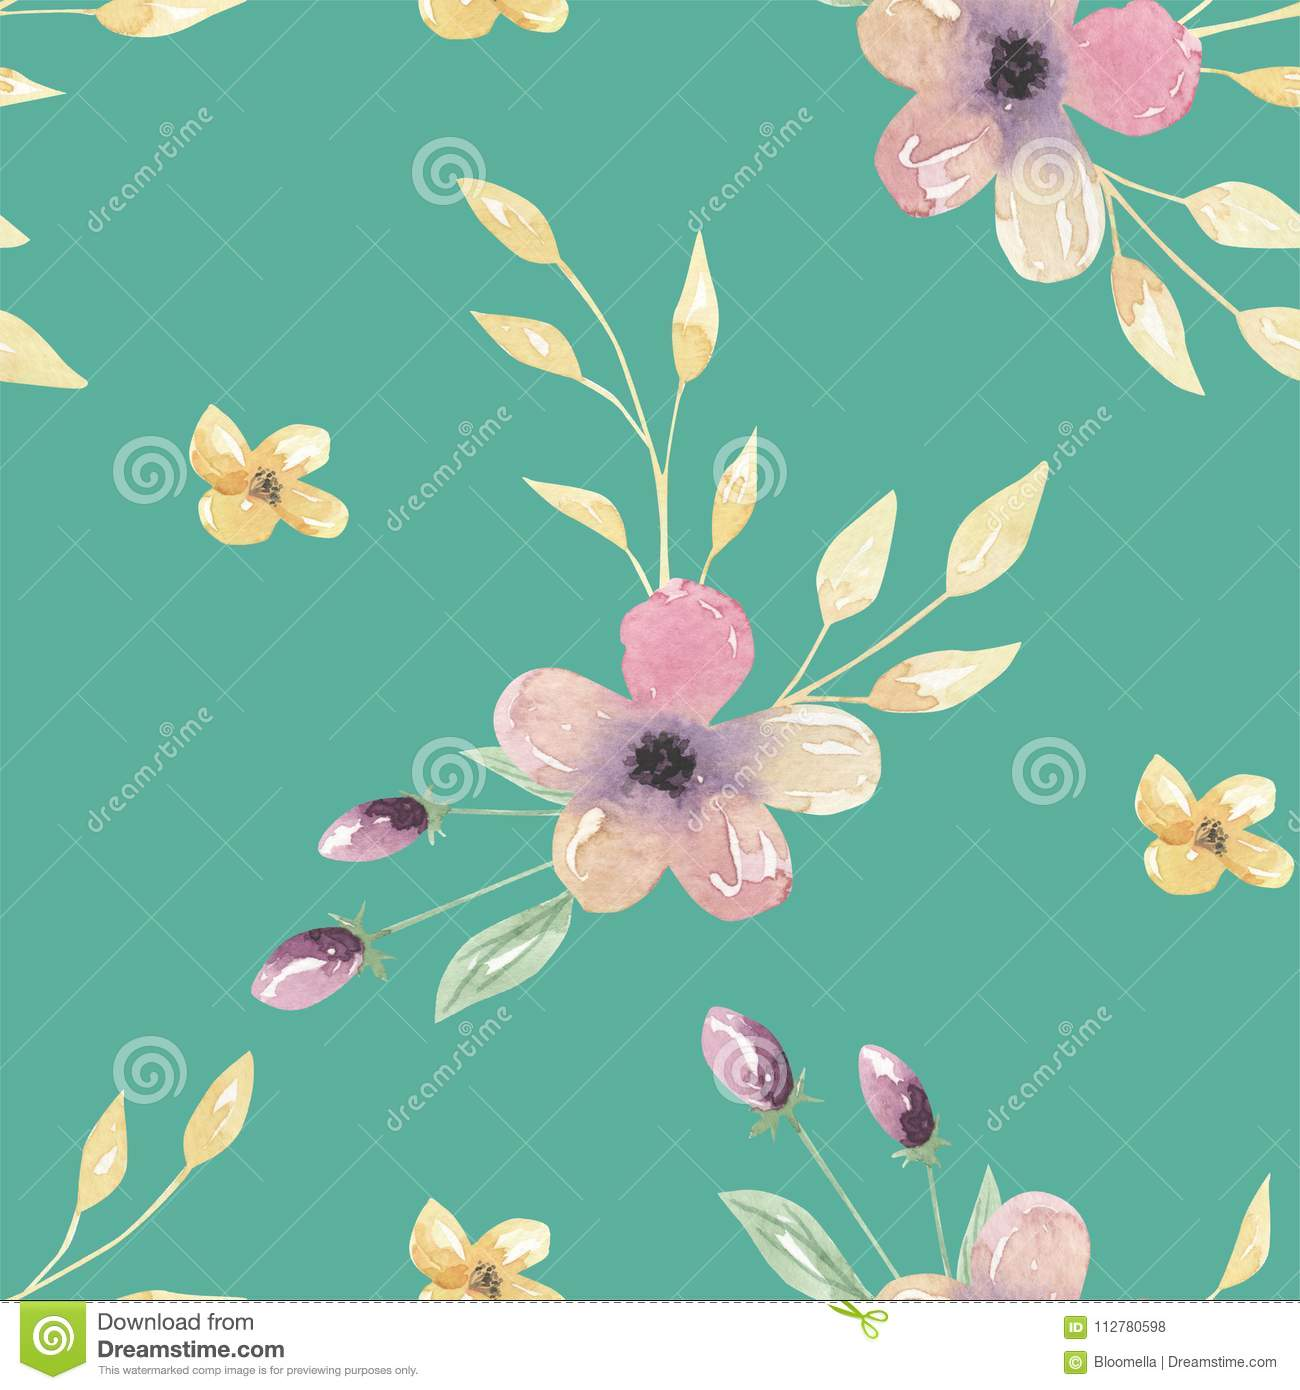 Watercolor Teal Flowers Pink Leaves Green Floral Seamless Patterns